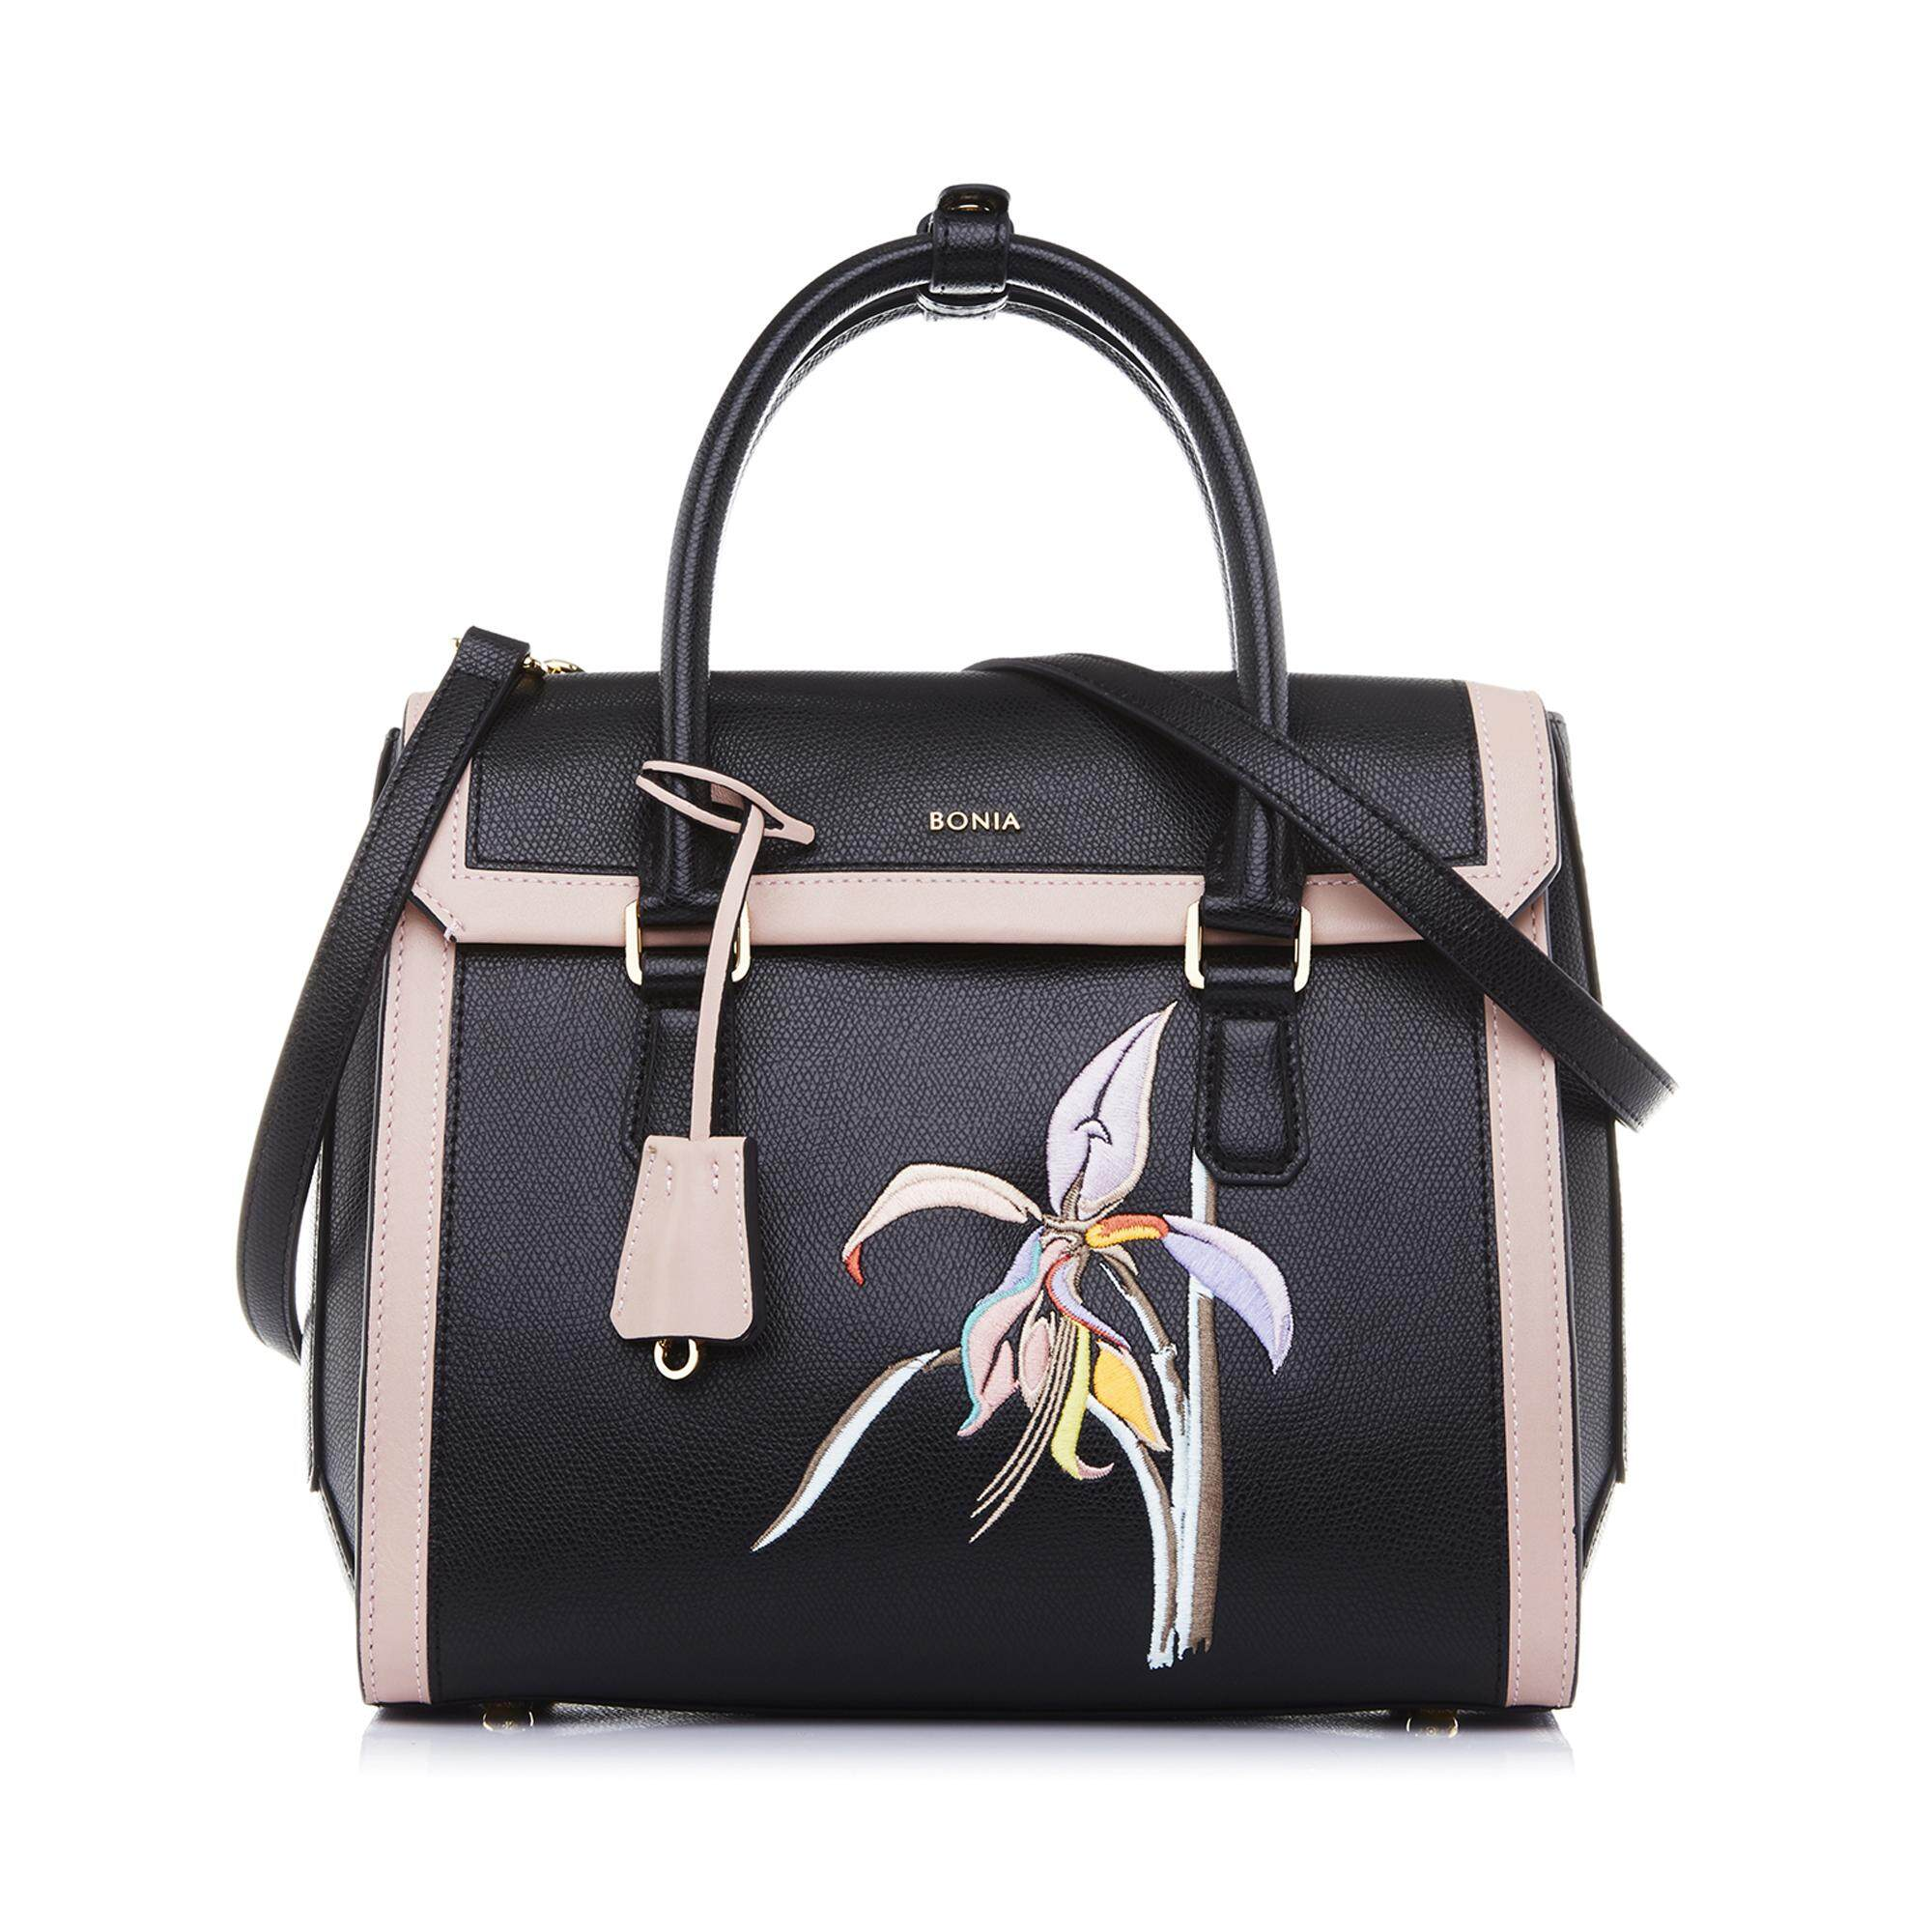 Bonia Blackc Satchel M